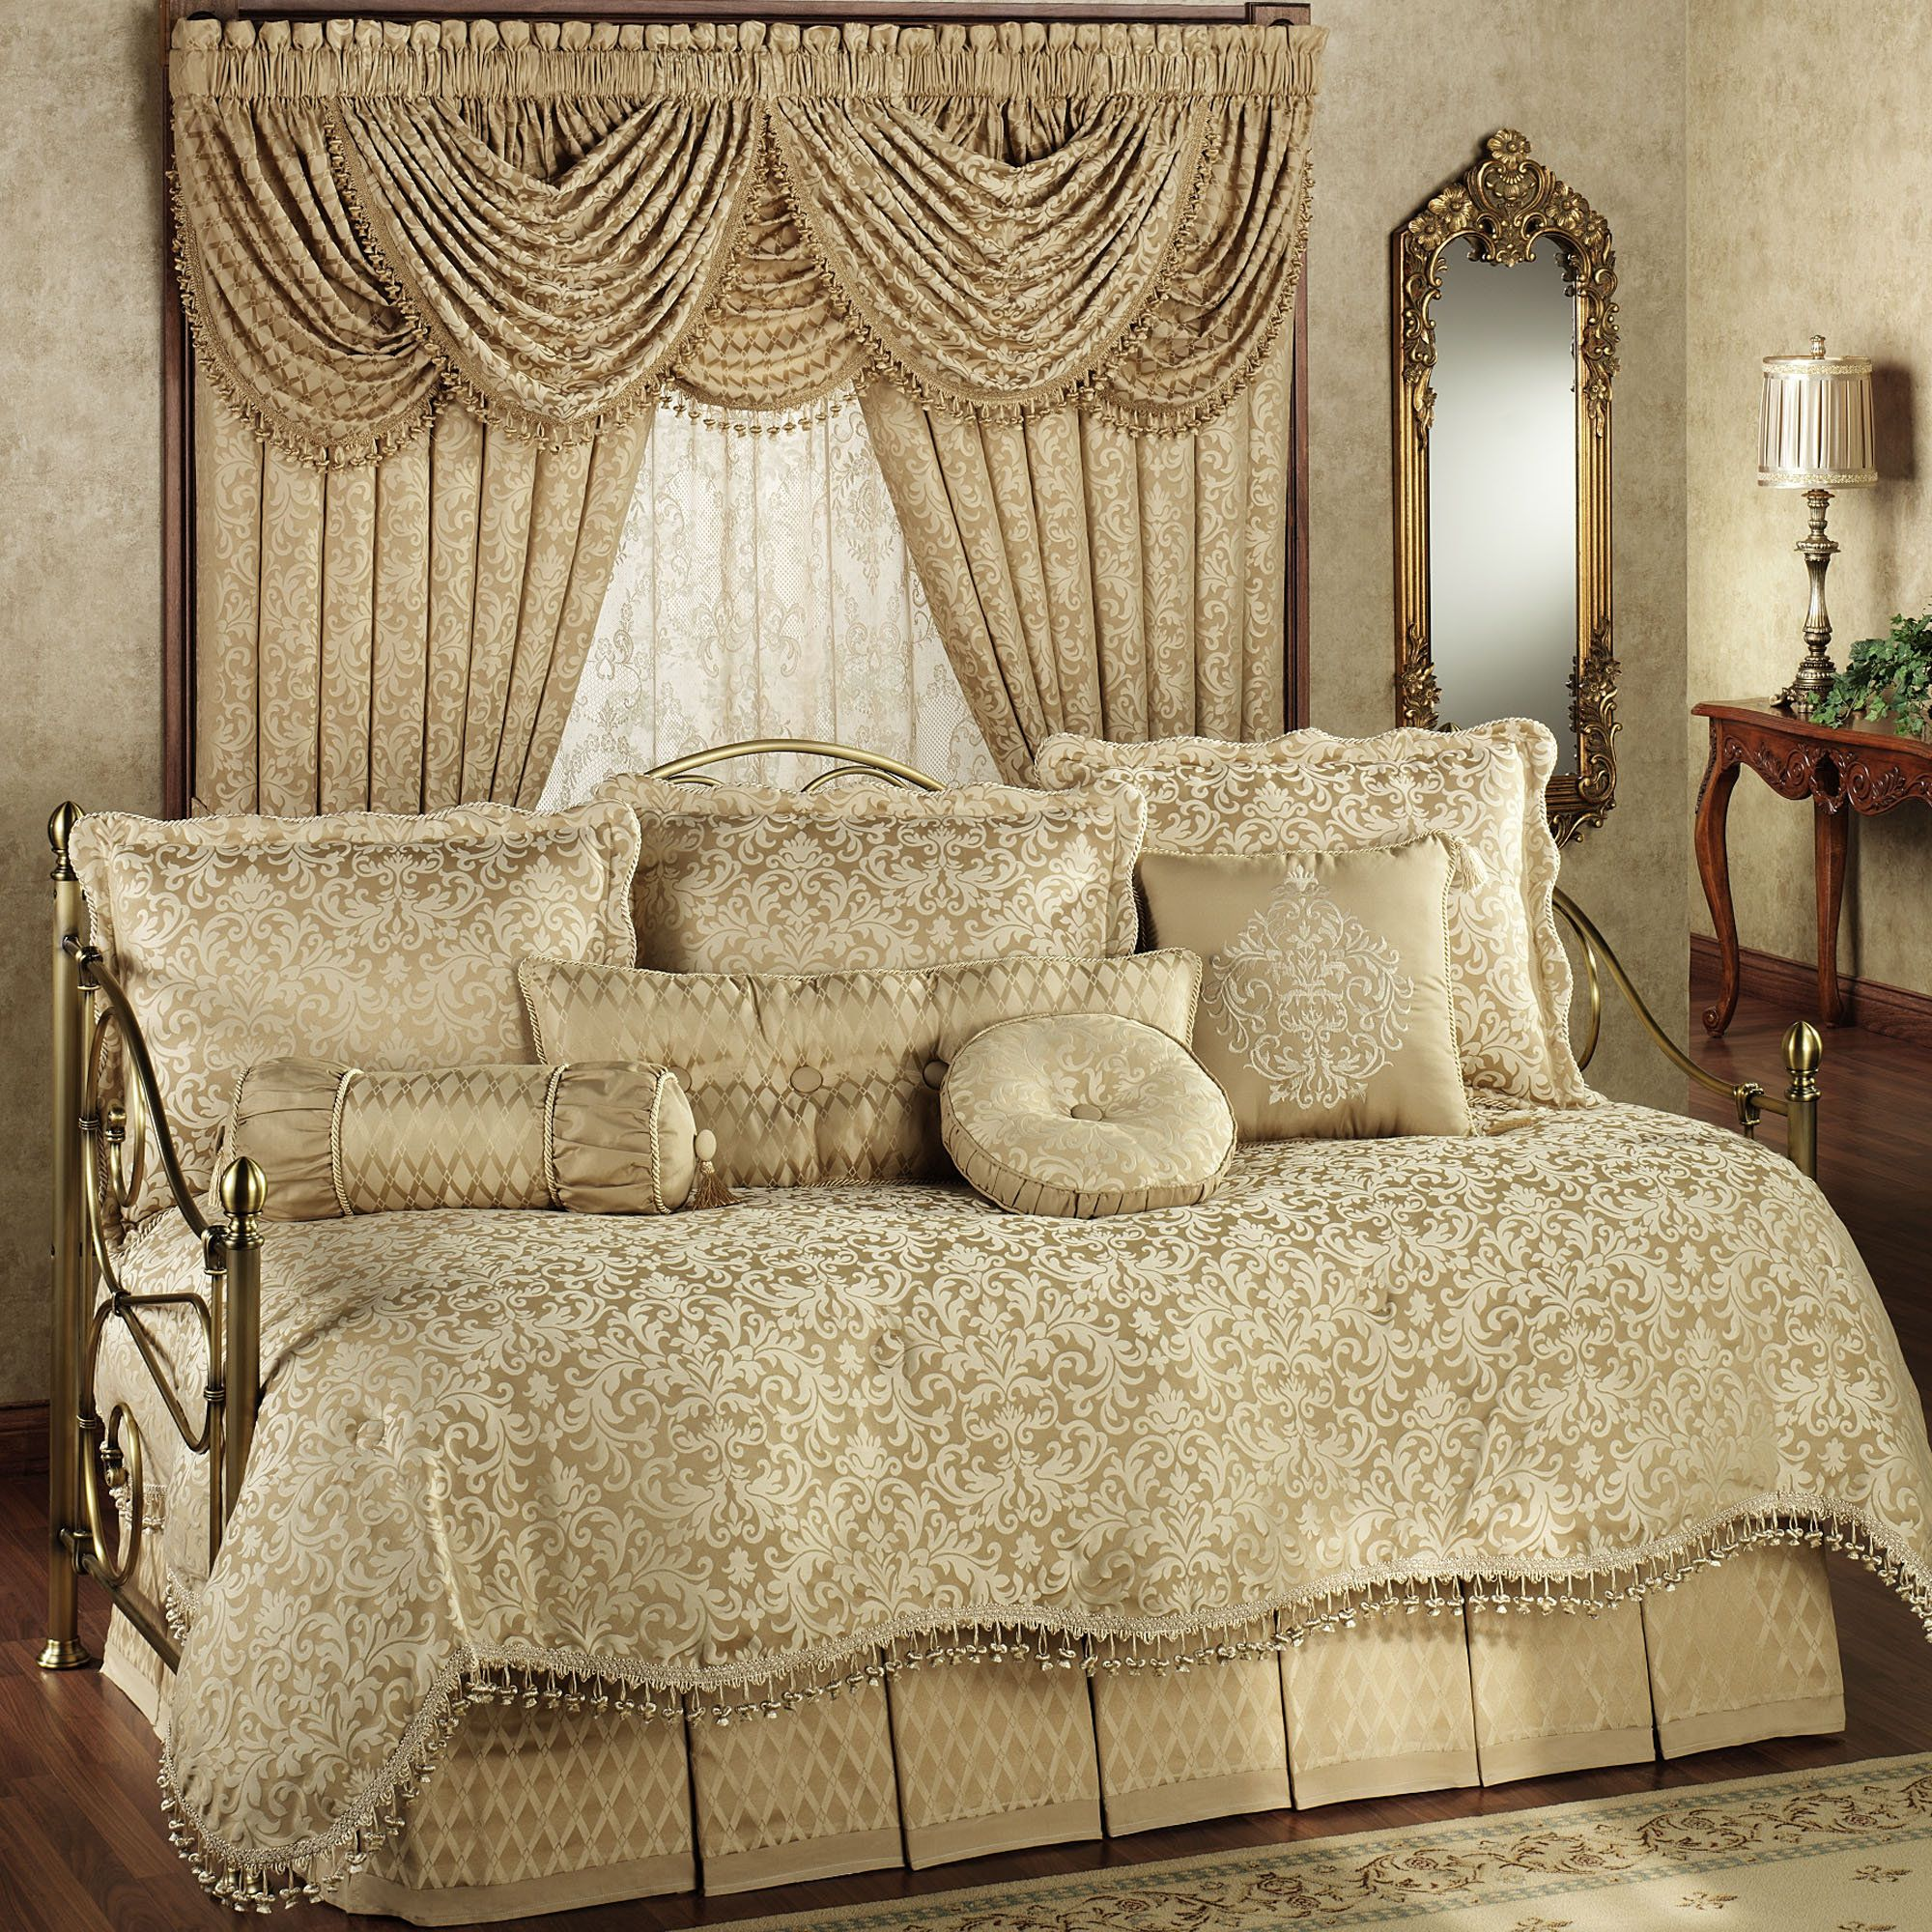 Newcastle Damask Daybed Bedding Set For the Home